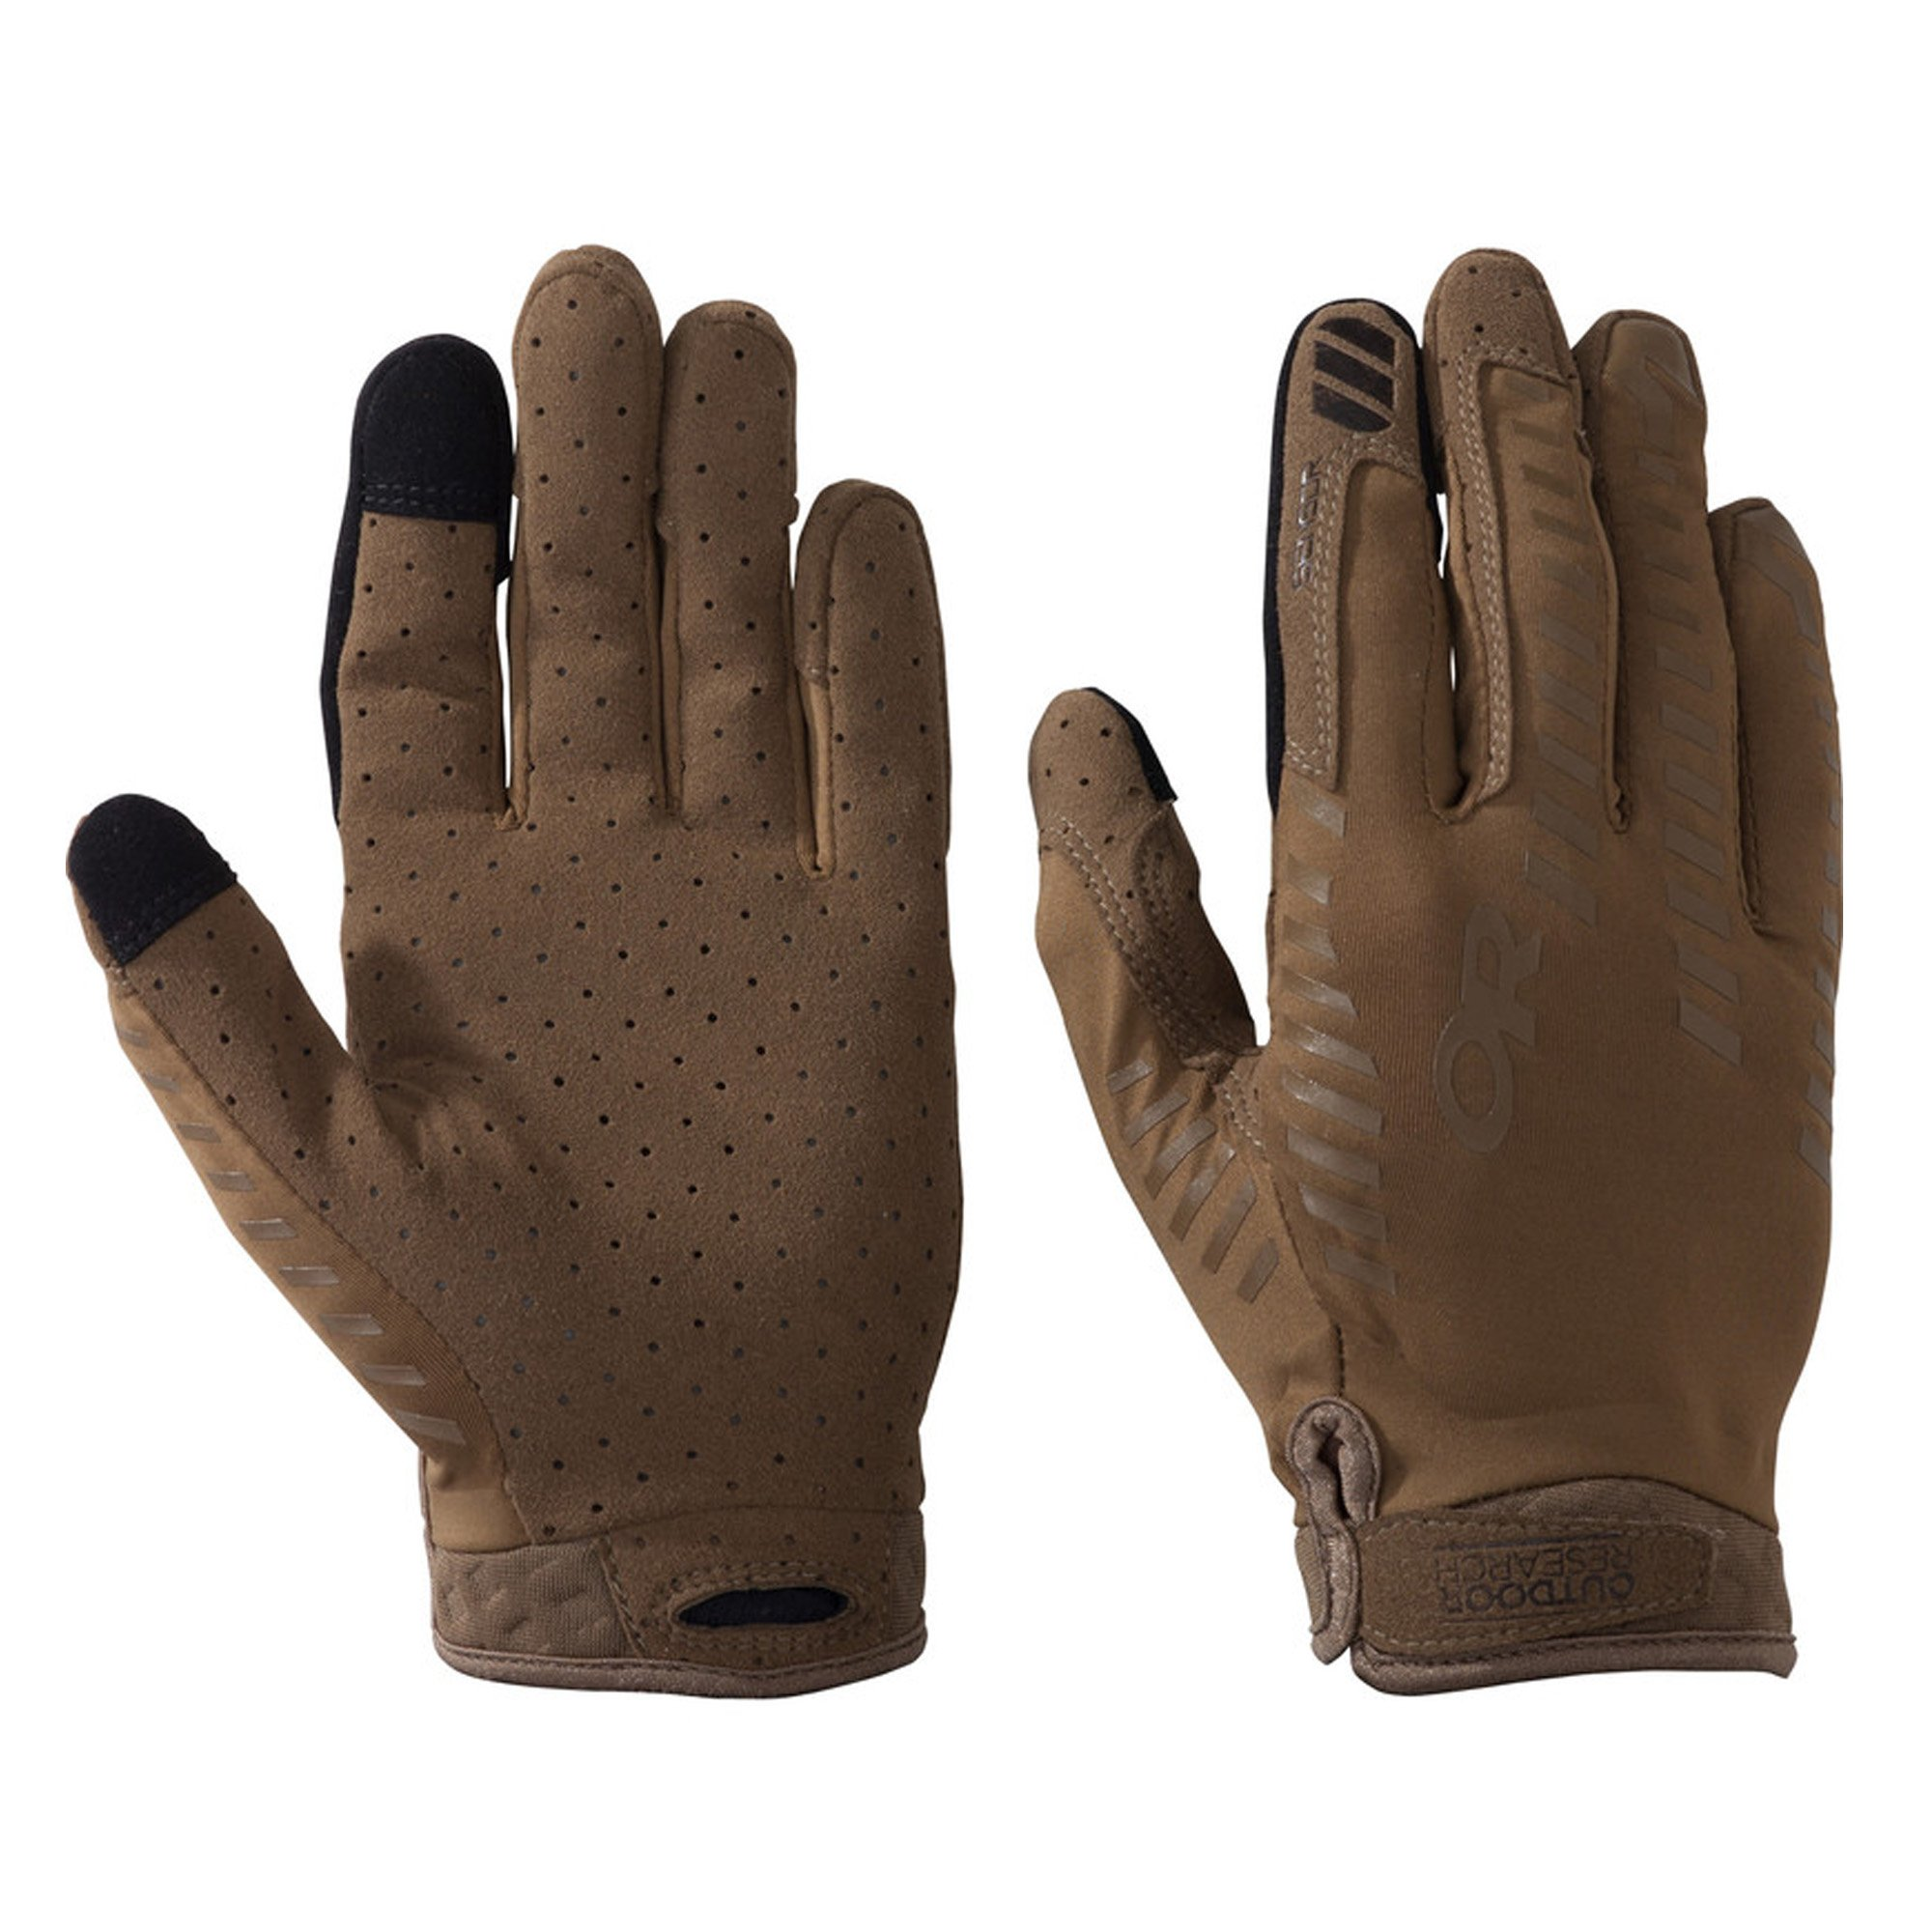 Outdoor Research Aerator Sensor Gloves, Coyote, X-Large